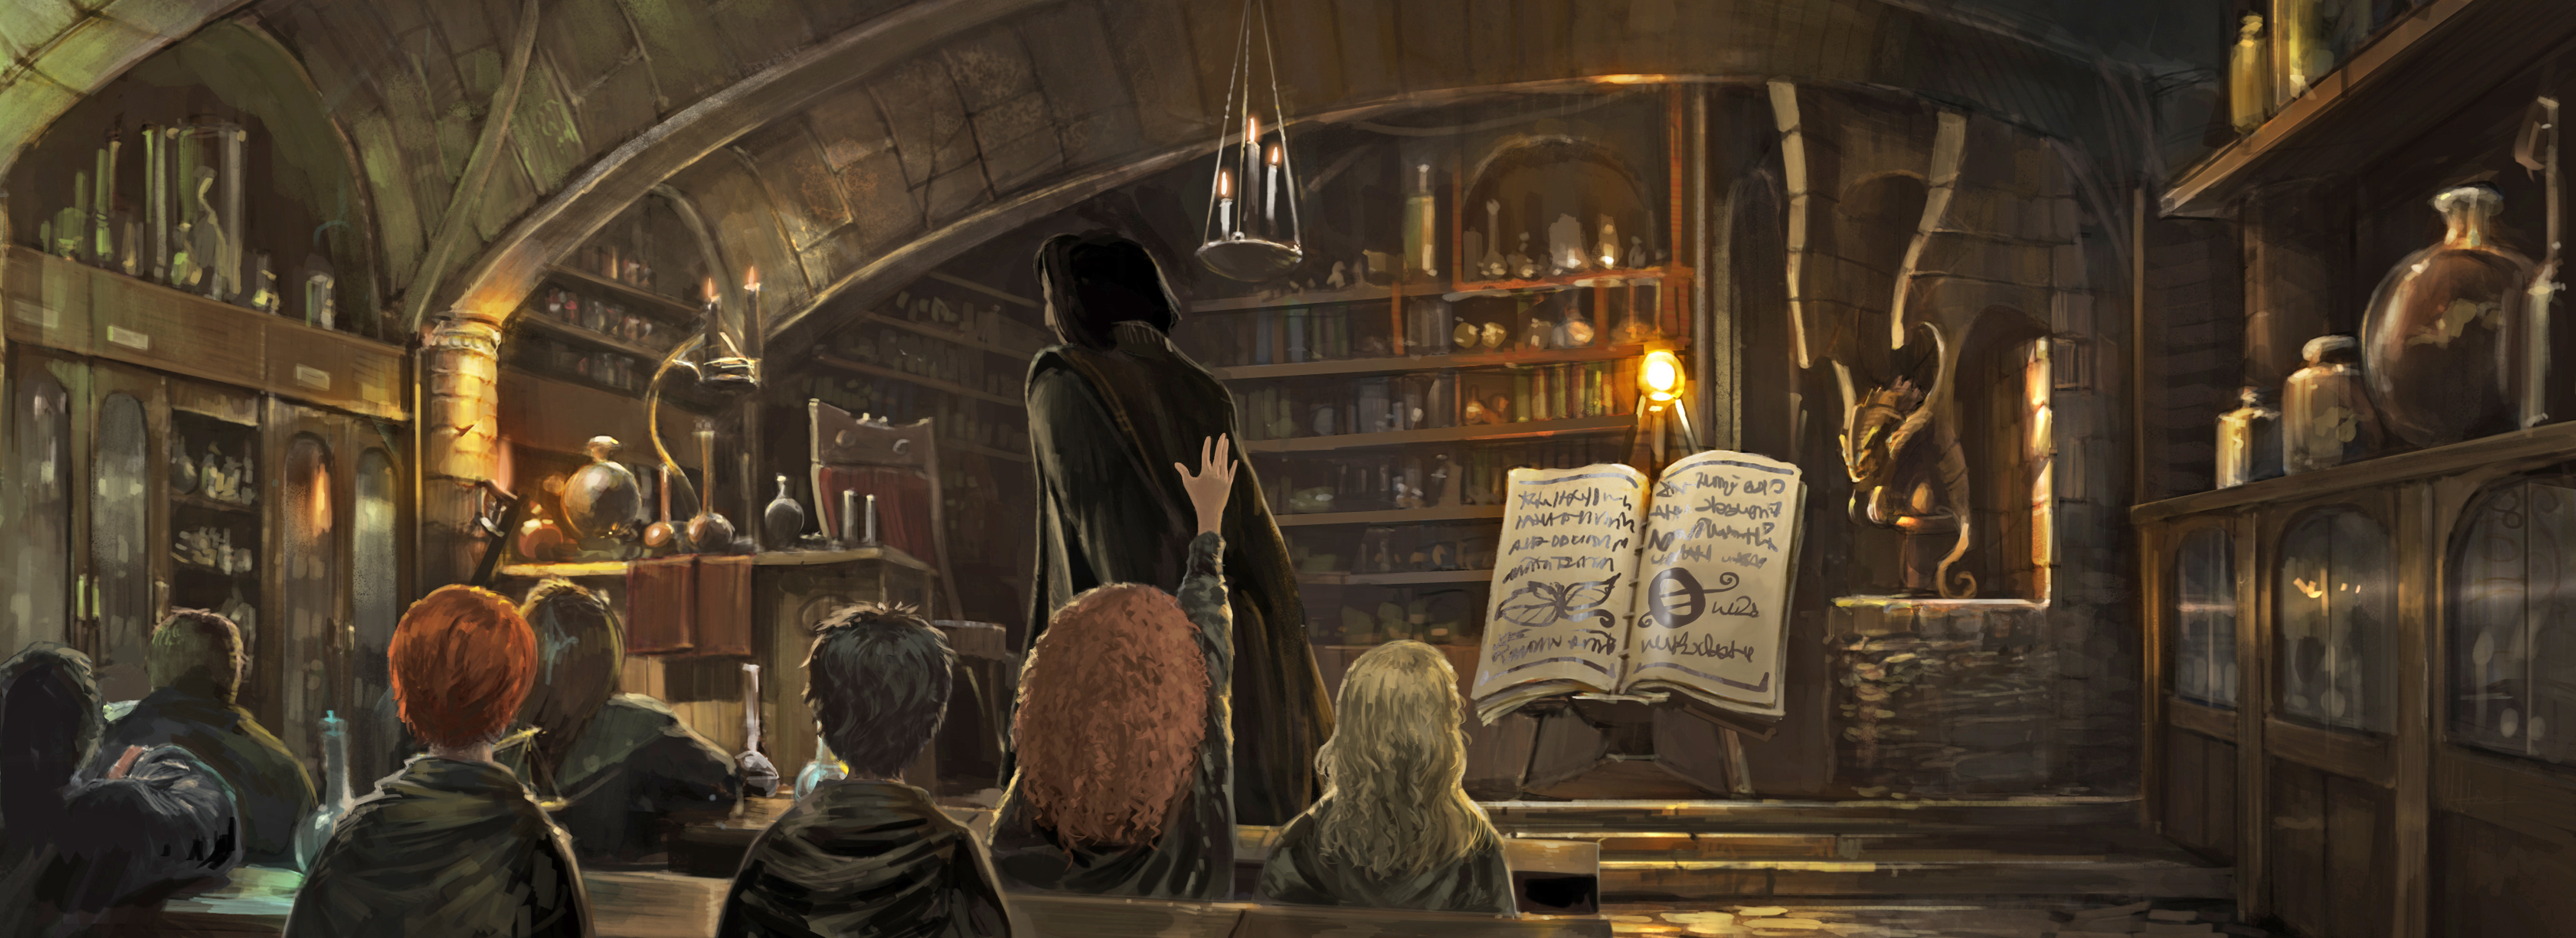 SeverusSnape PM B1C8M2 SnapeTeachingPotions Moment